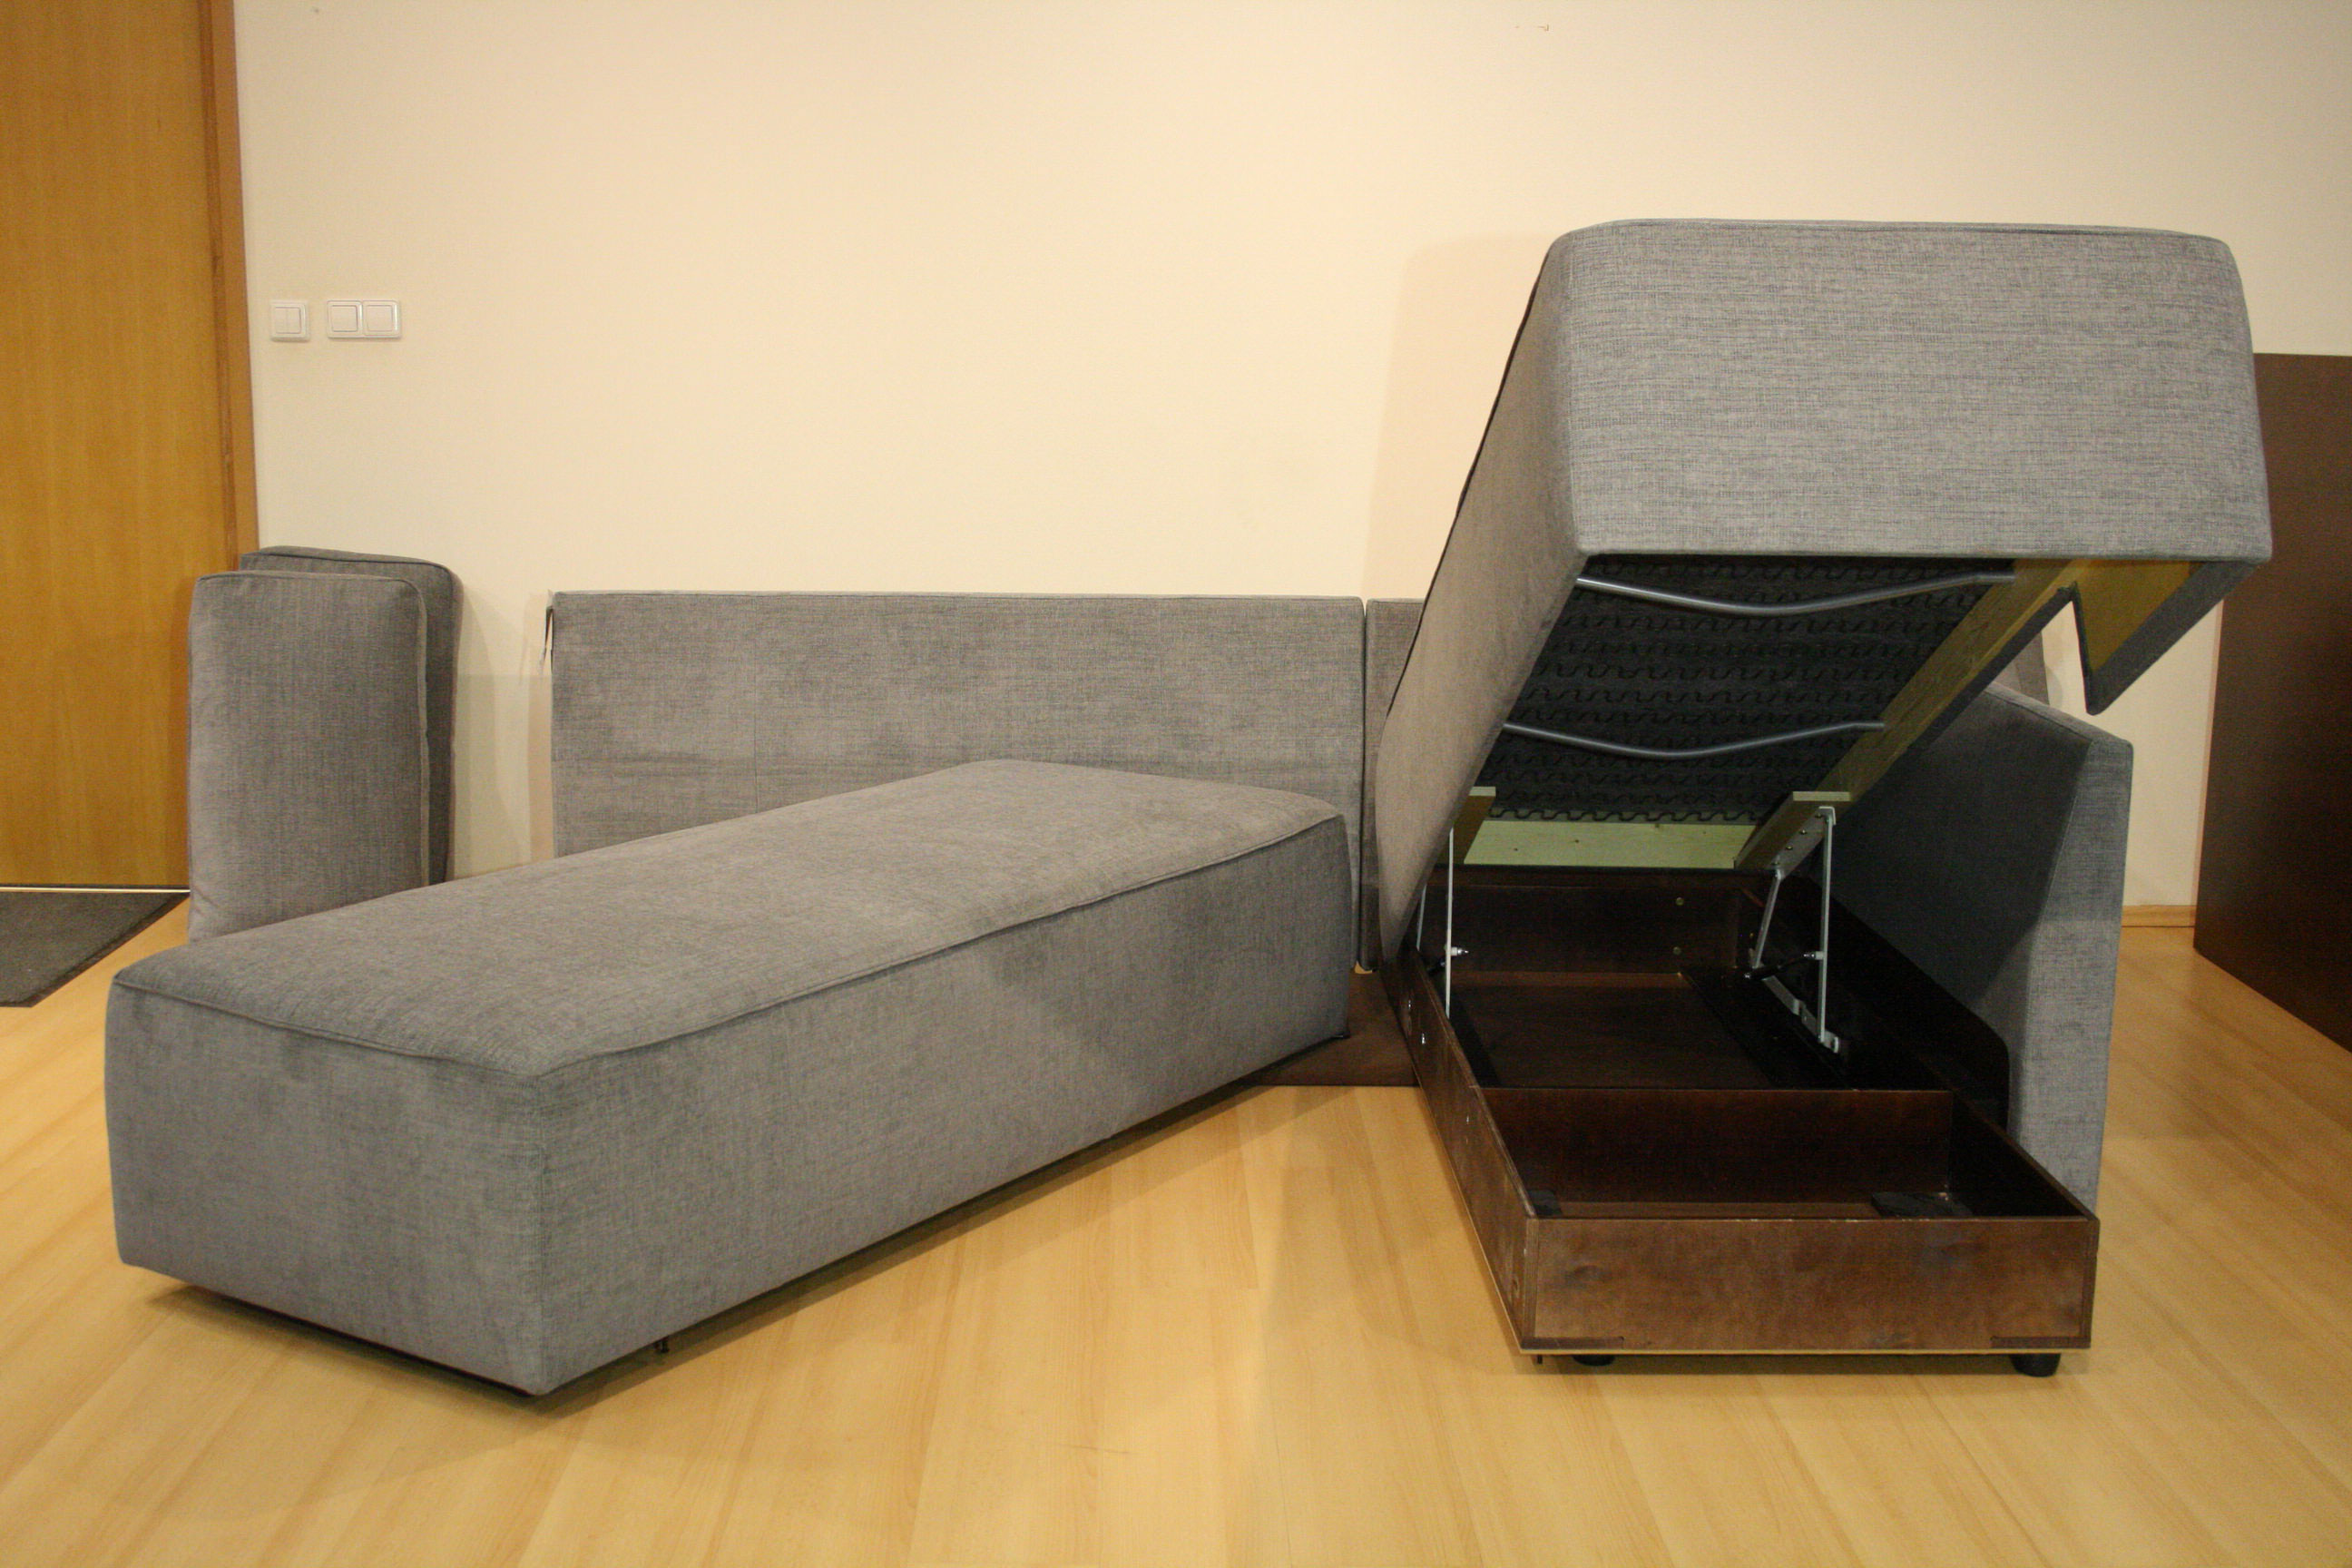 New York Sectional Sofa Sleeper Queen Size Rhf By Luonto Furniture